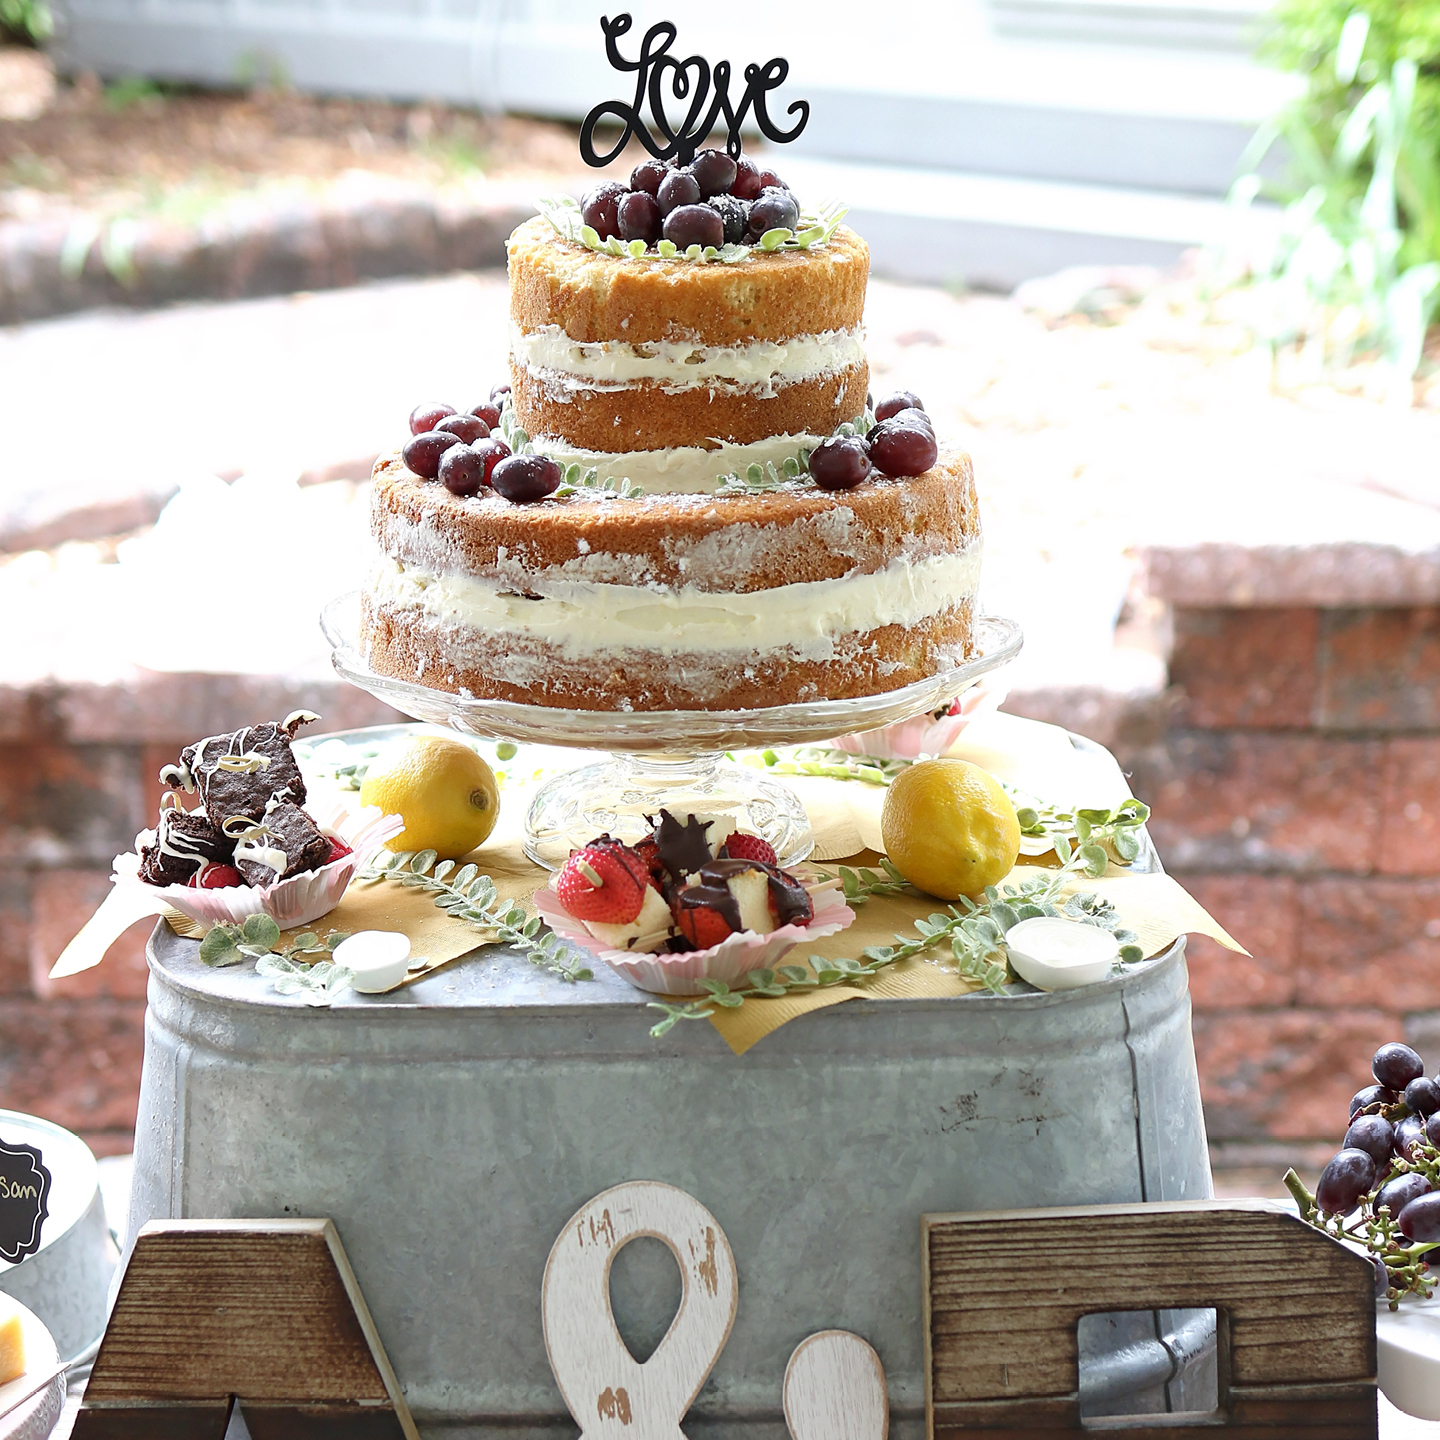 Homemade Wedding Cake.Wedition Top Tips For The Perfect Summer Wedding Cake